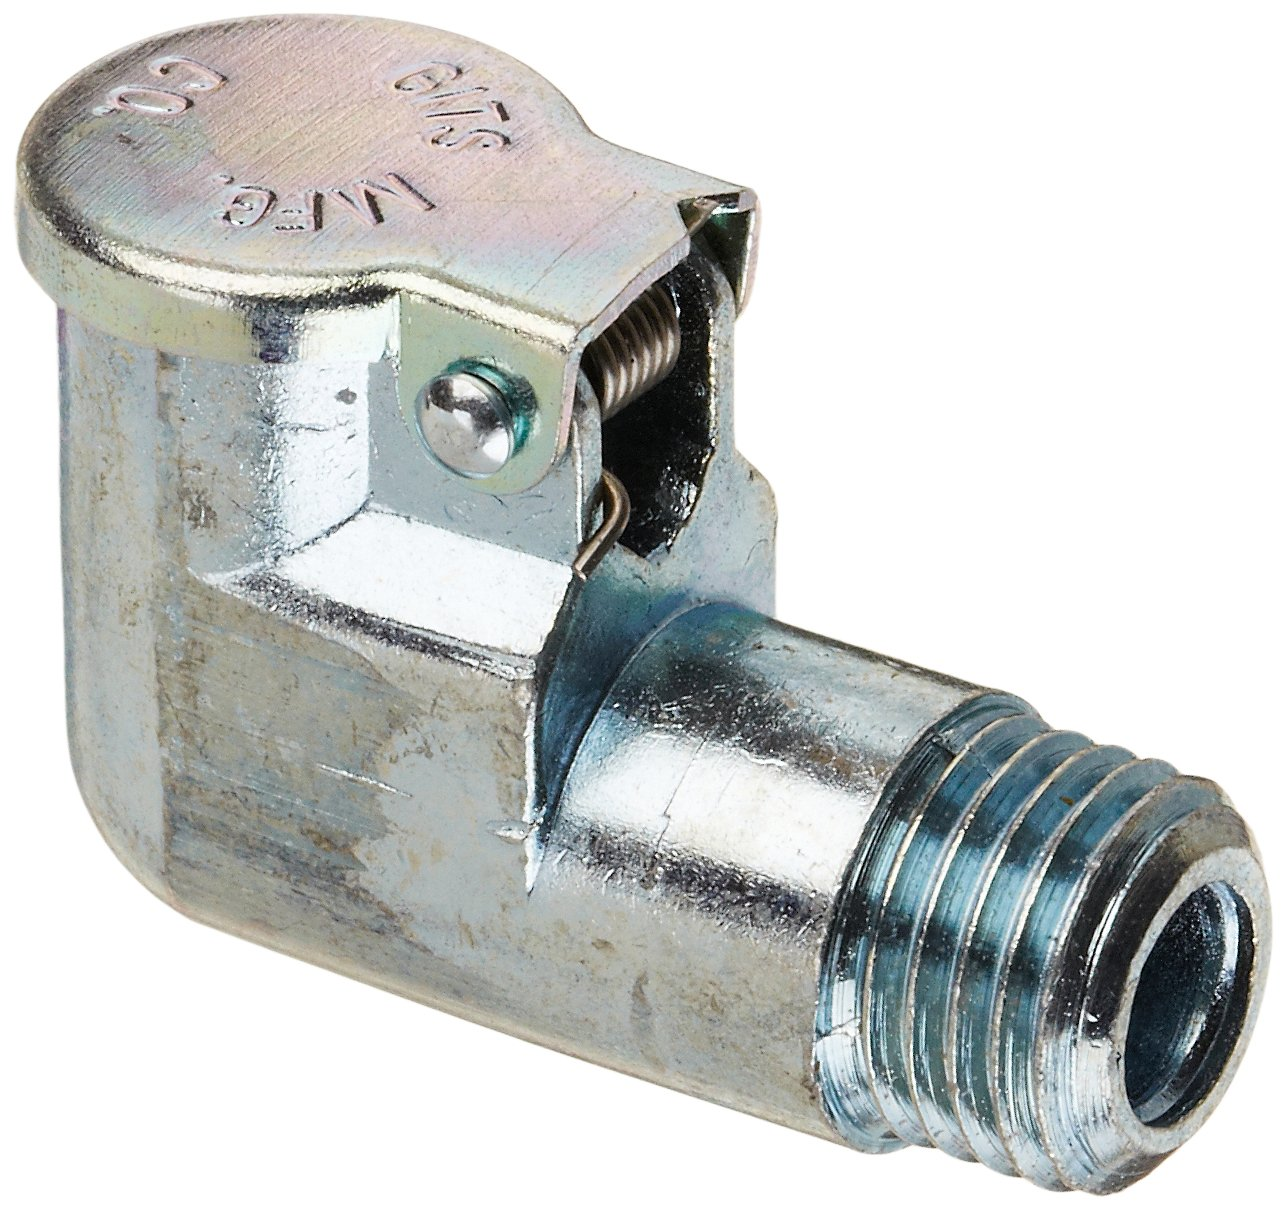 Gits 01206 Oil Hole Covers and Cup, Style L Elbow Threaded Oiler, 3/8''- 24 Male UNF, 25/32 Overall Height, 1-5/16 Assembly Clearance